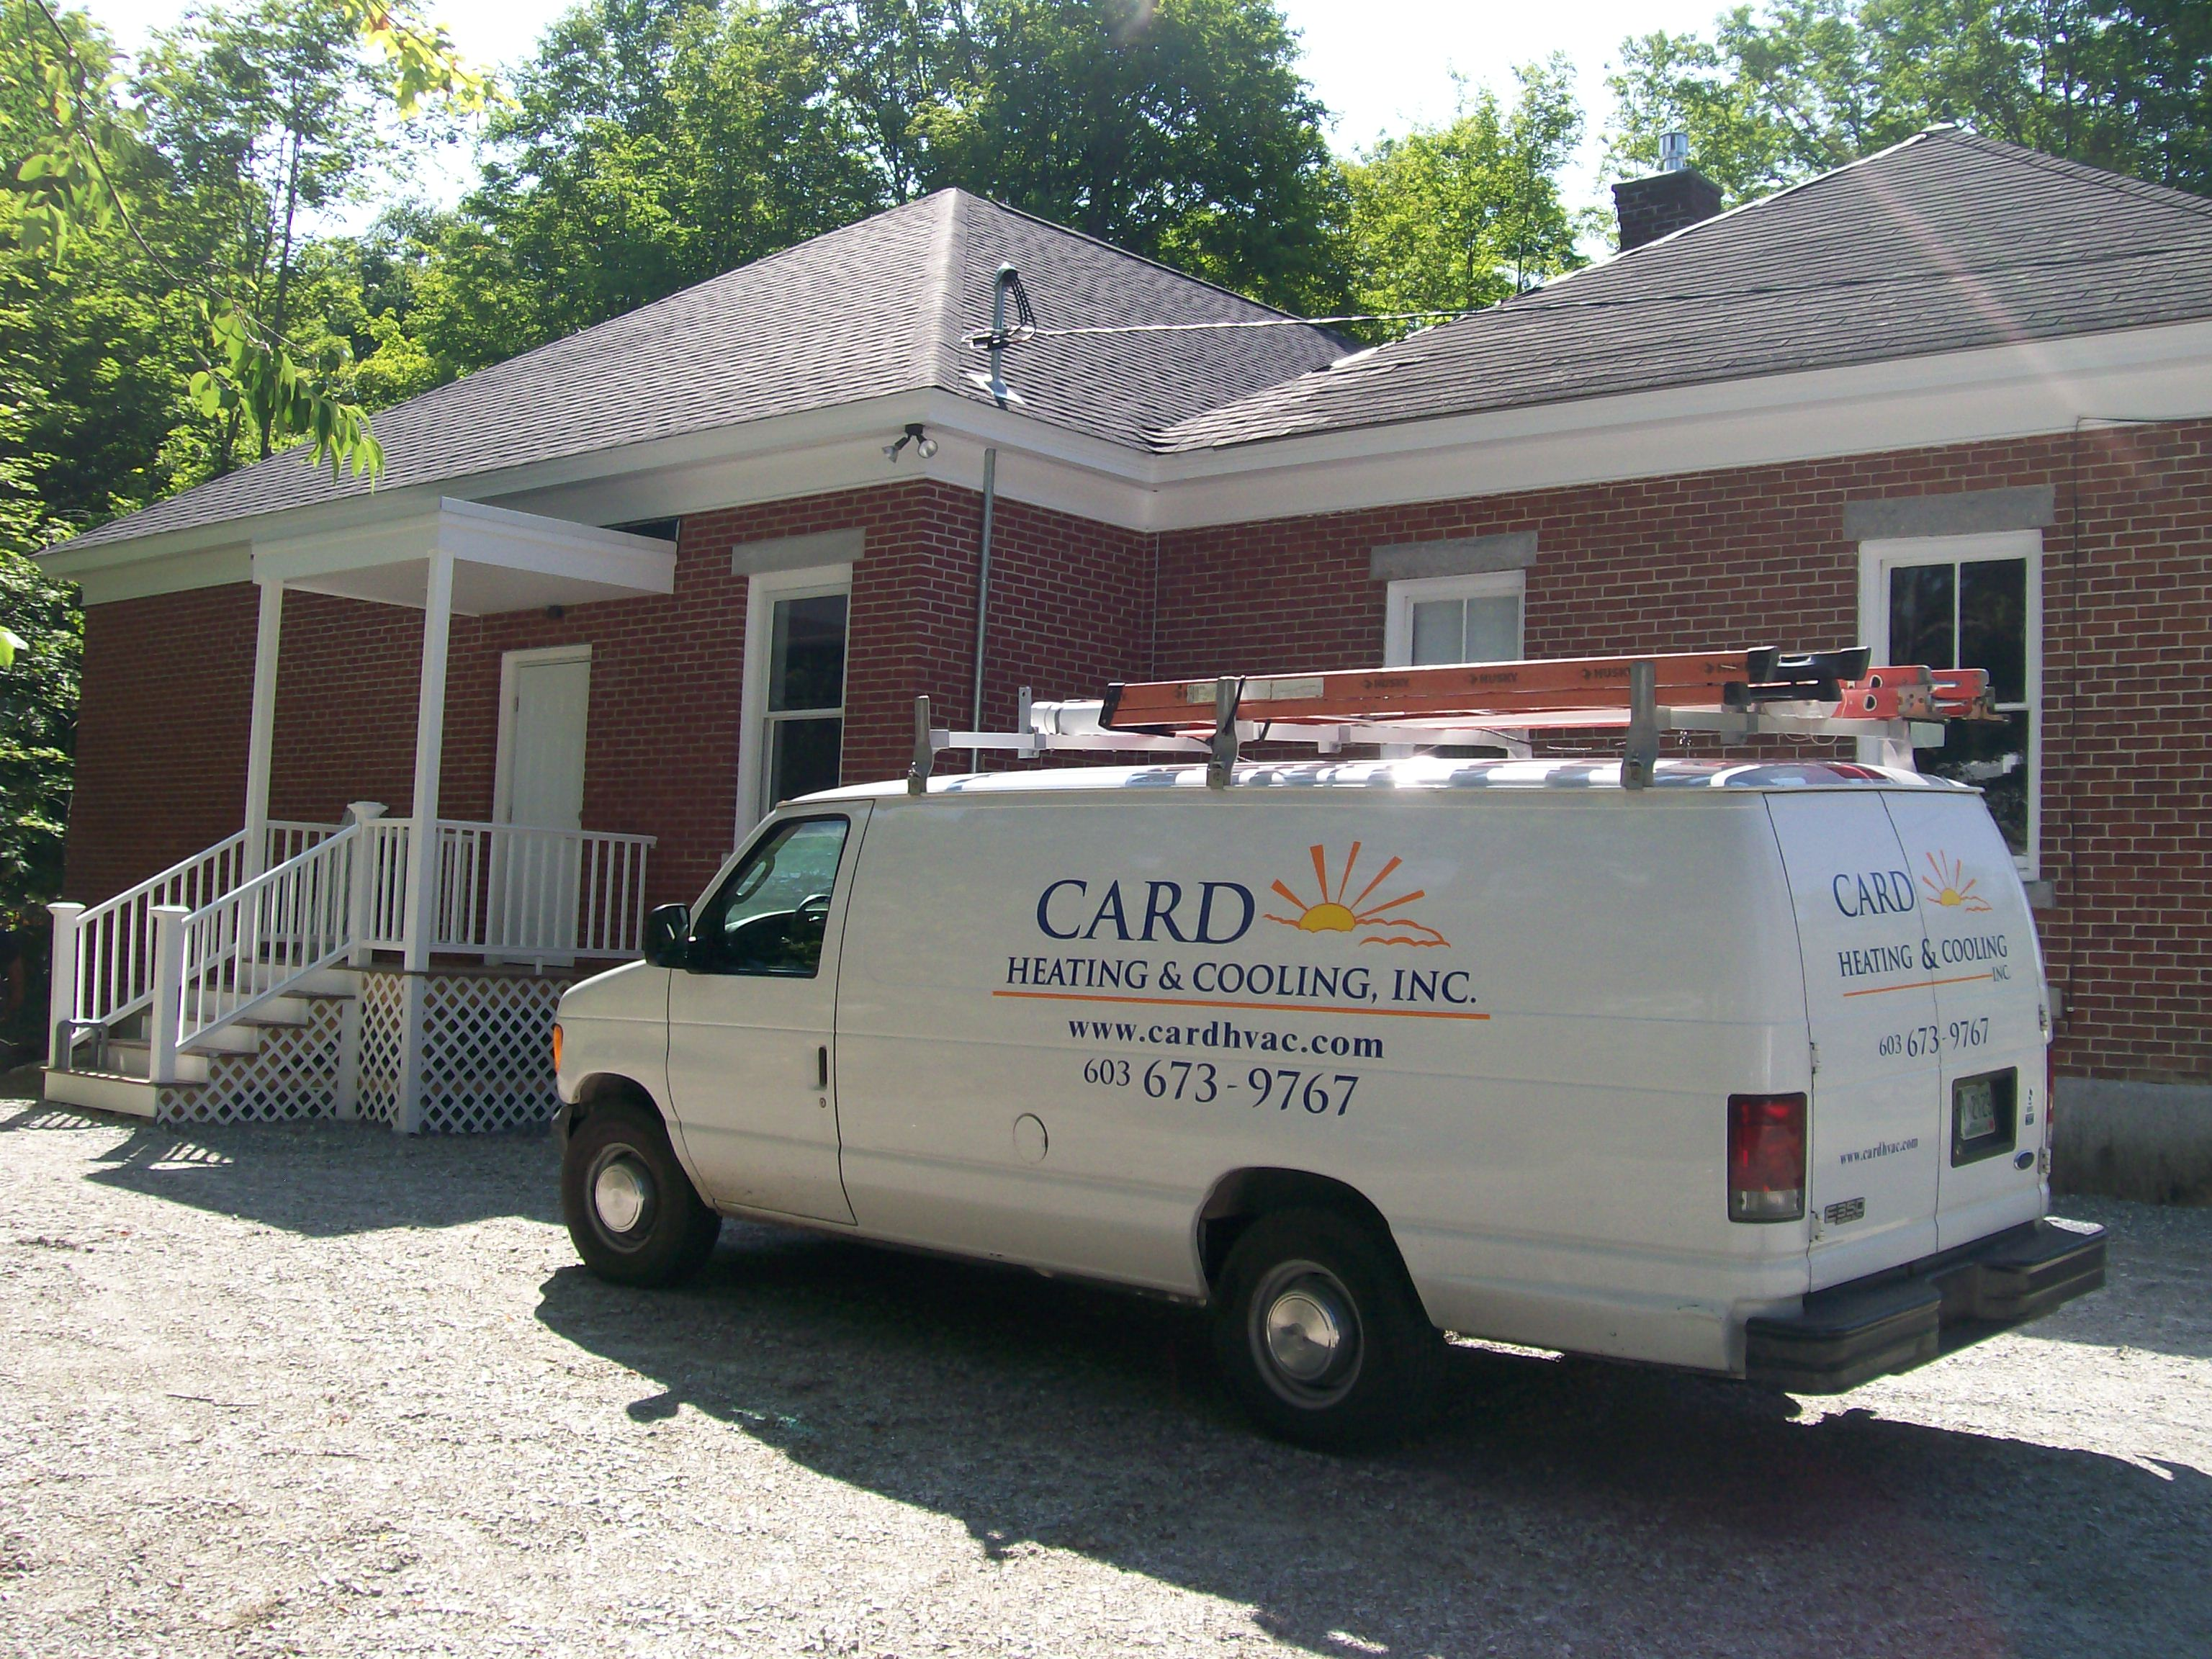 Card Heating & Cooling, Inc (2)